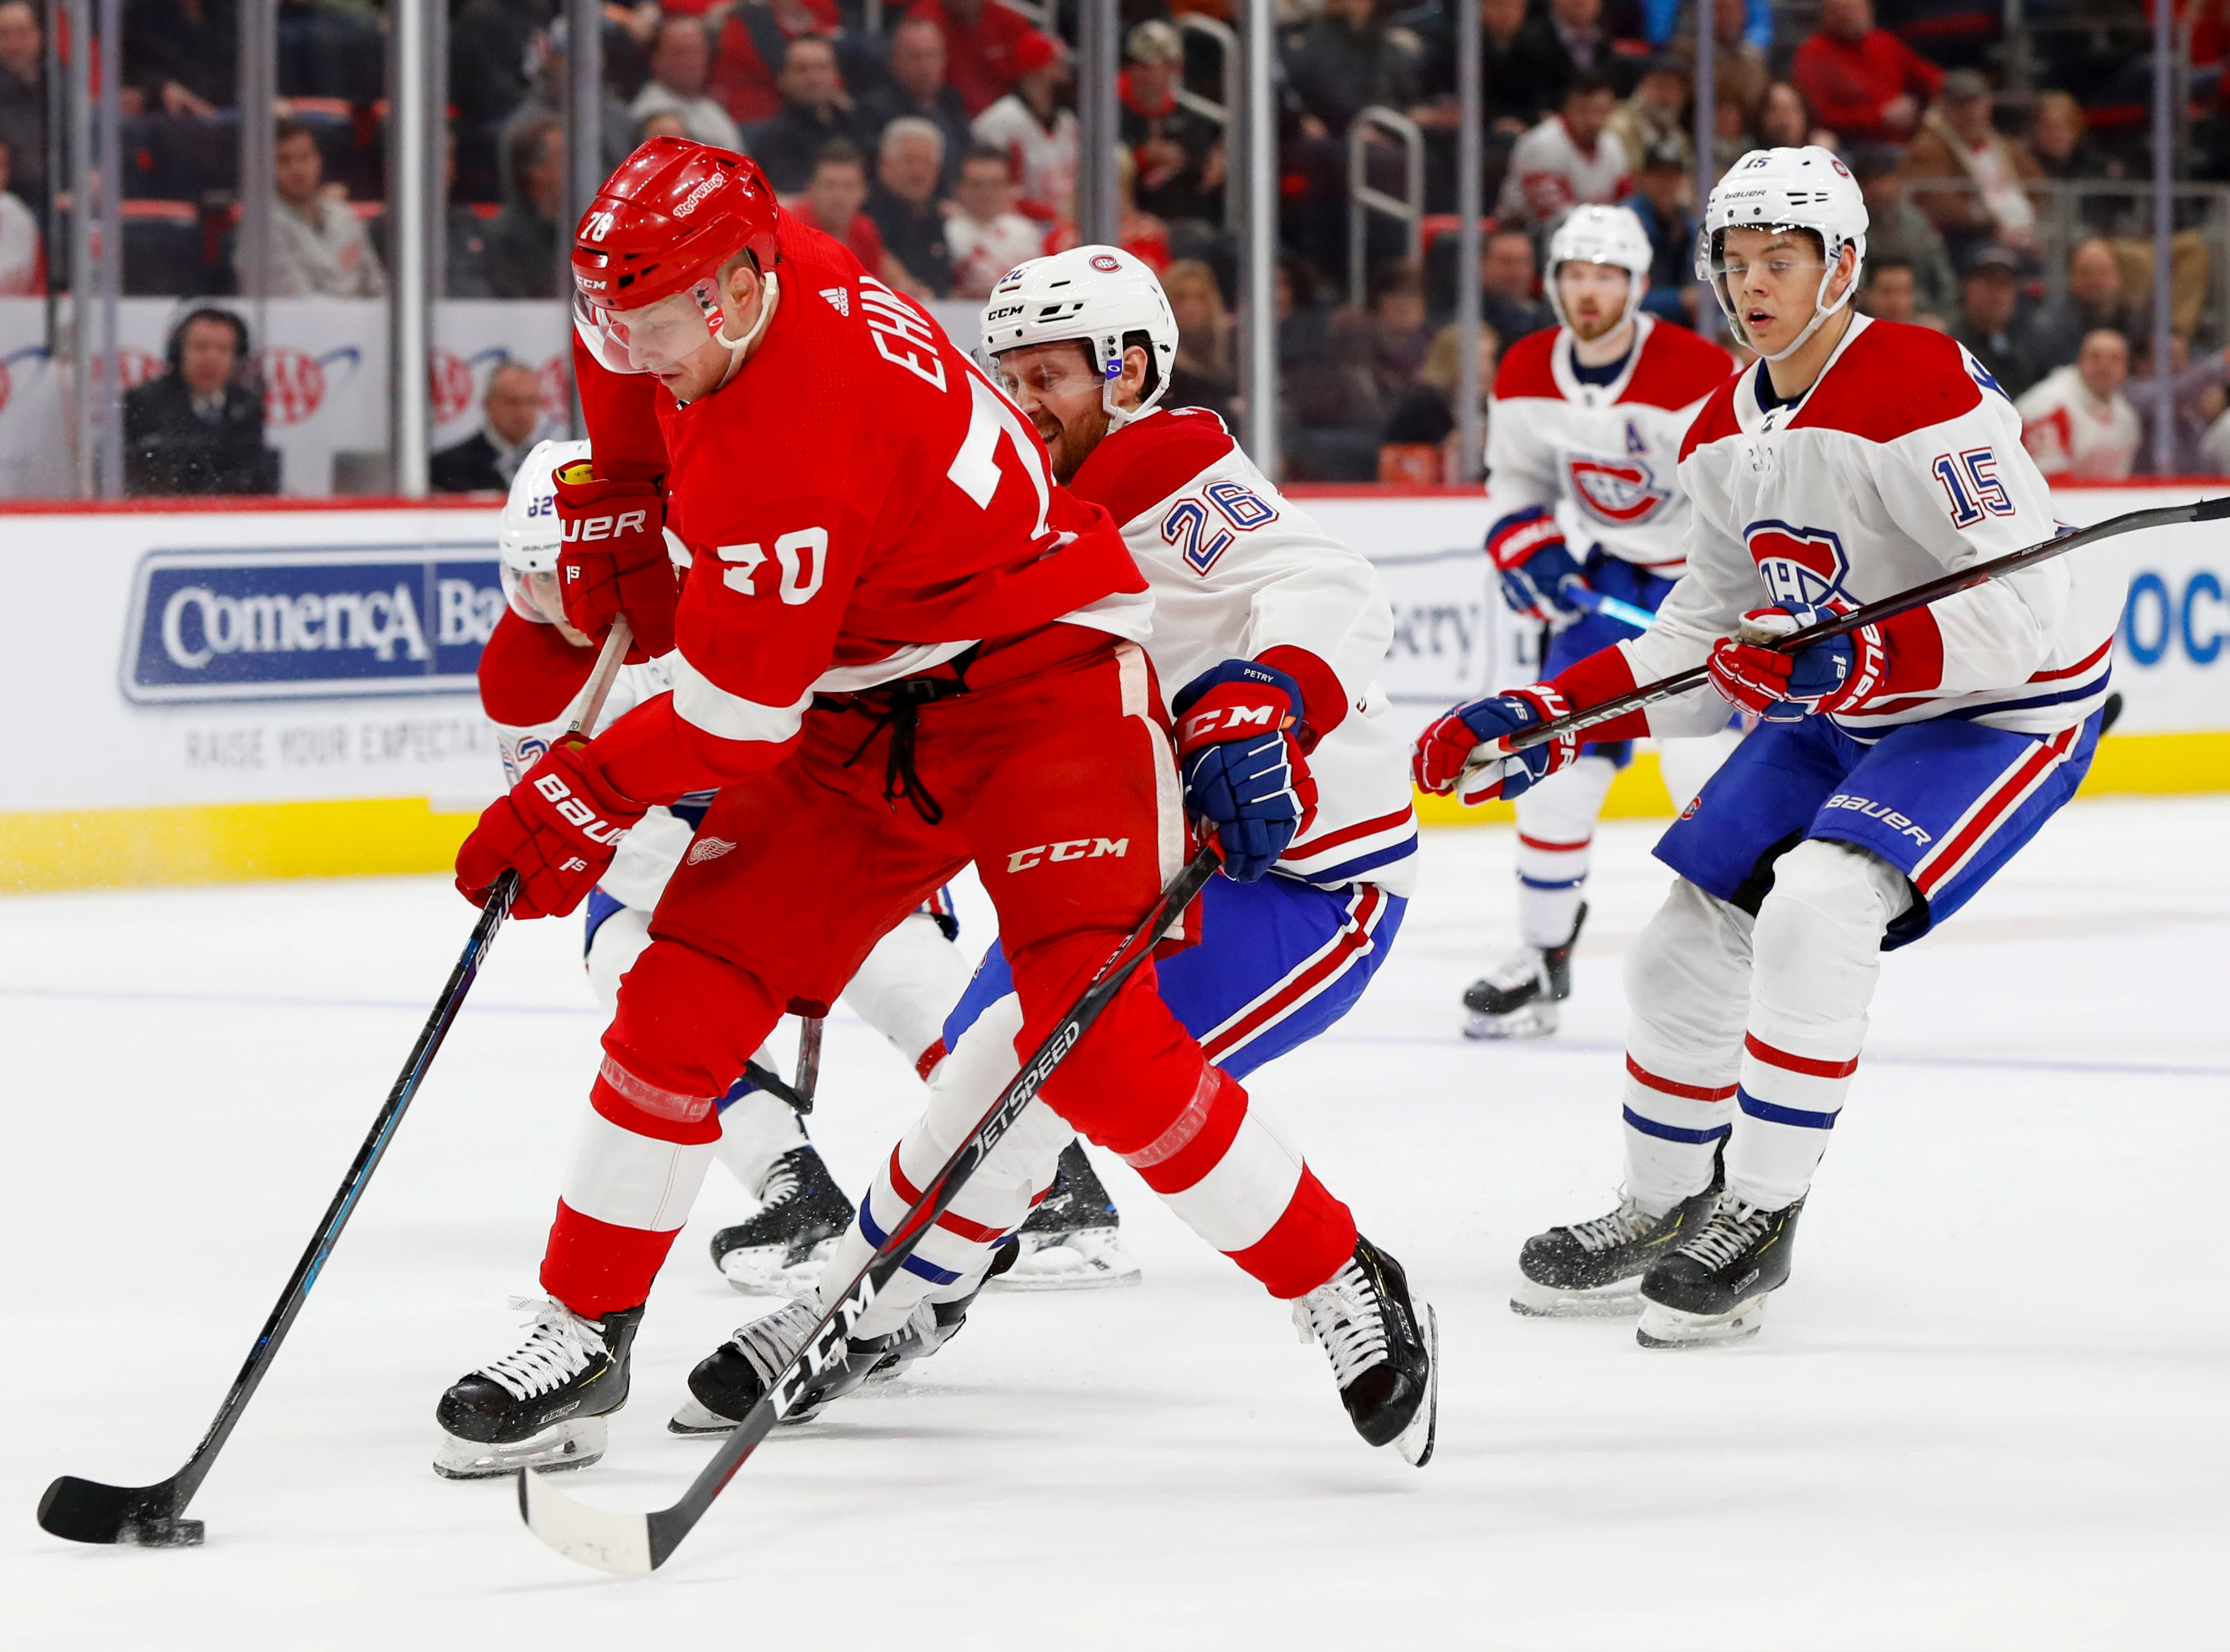 Detroit Red Wings center Christoffer Ehn (70) skates with the puck as Montreal Canadiens defenseman Jeff Petry (26) defends in the second period.